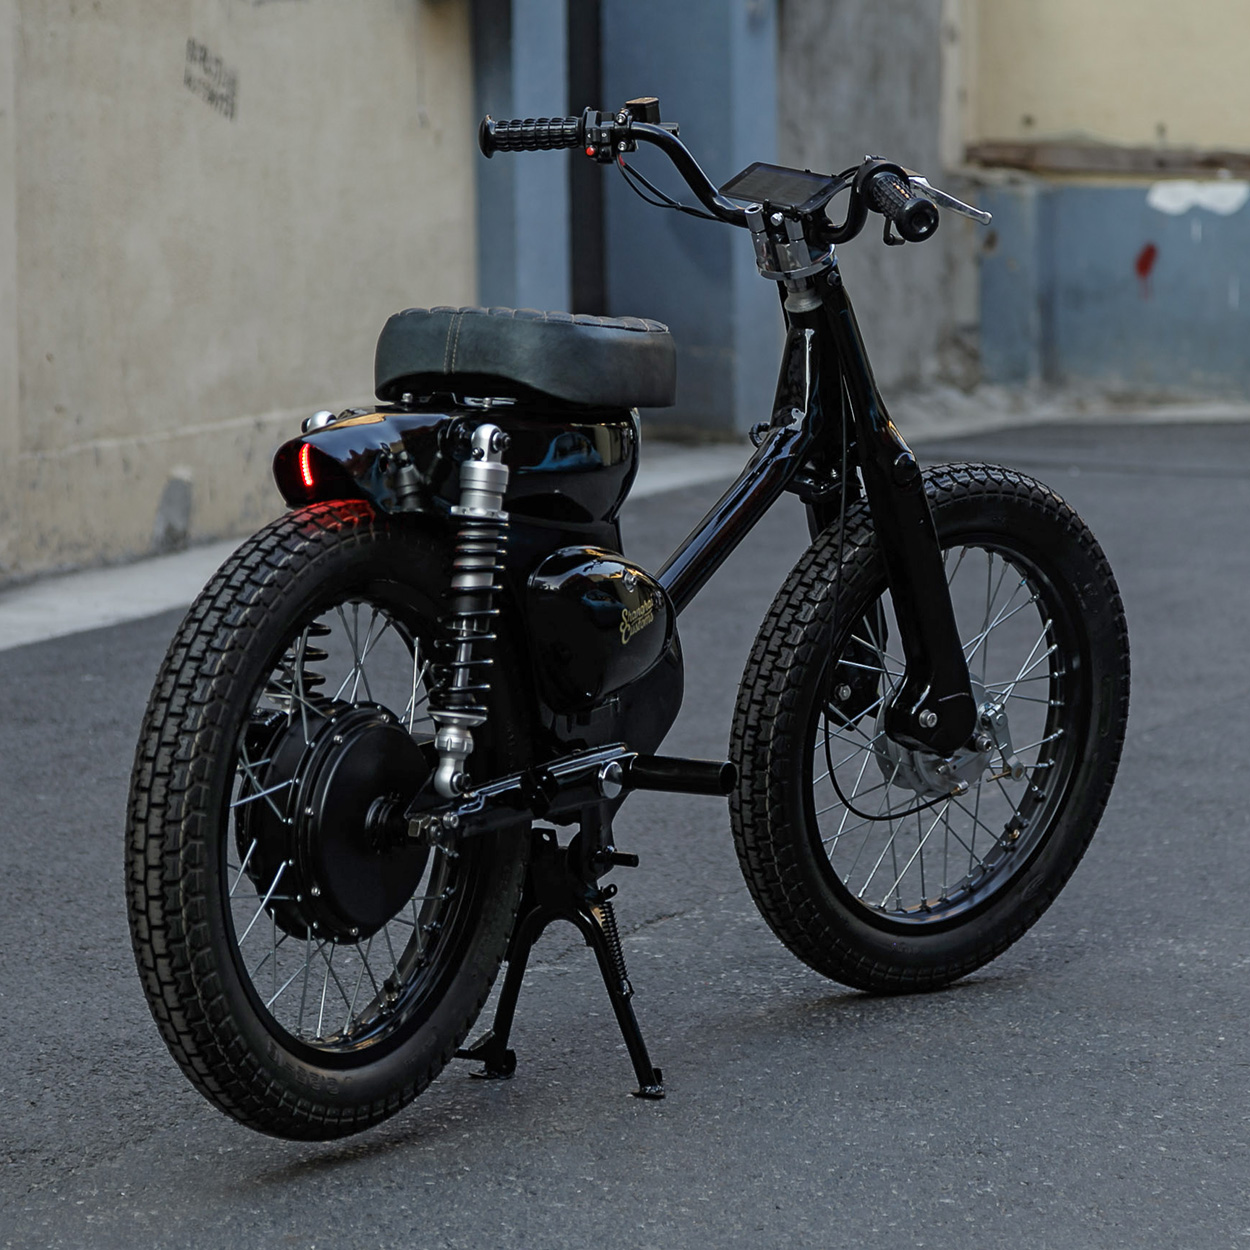 Honda Electric Motorcycle By Shanghai Customs Full Size